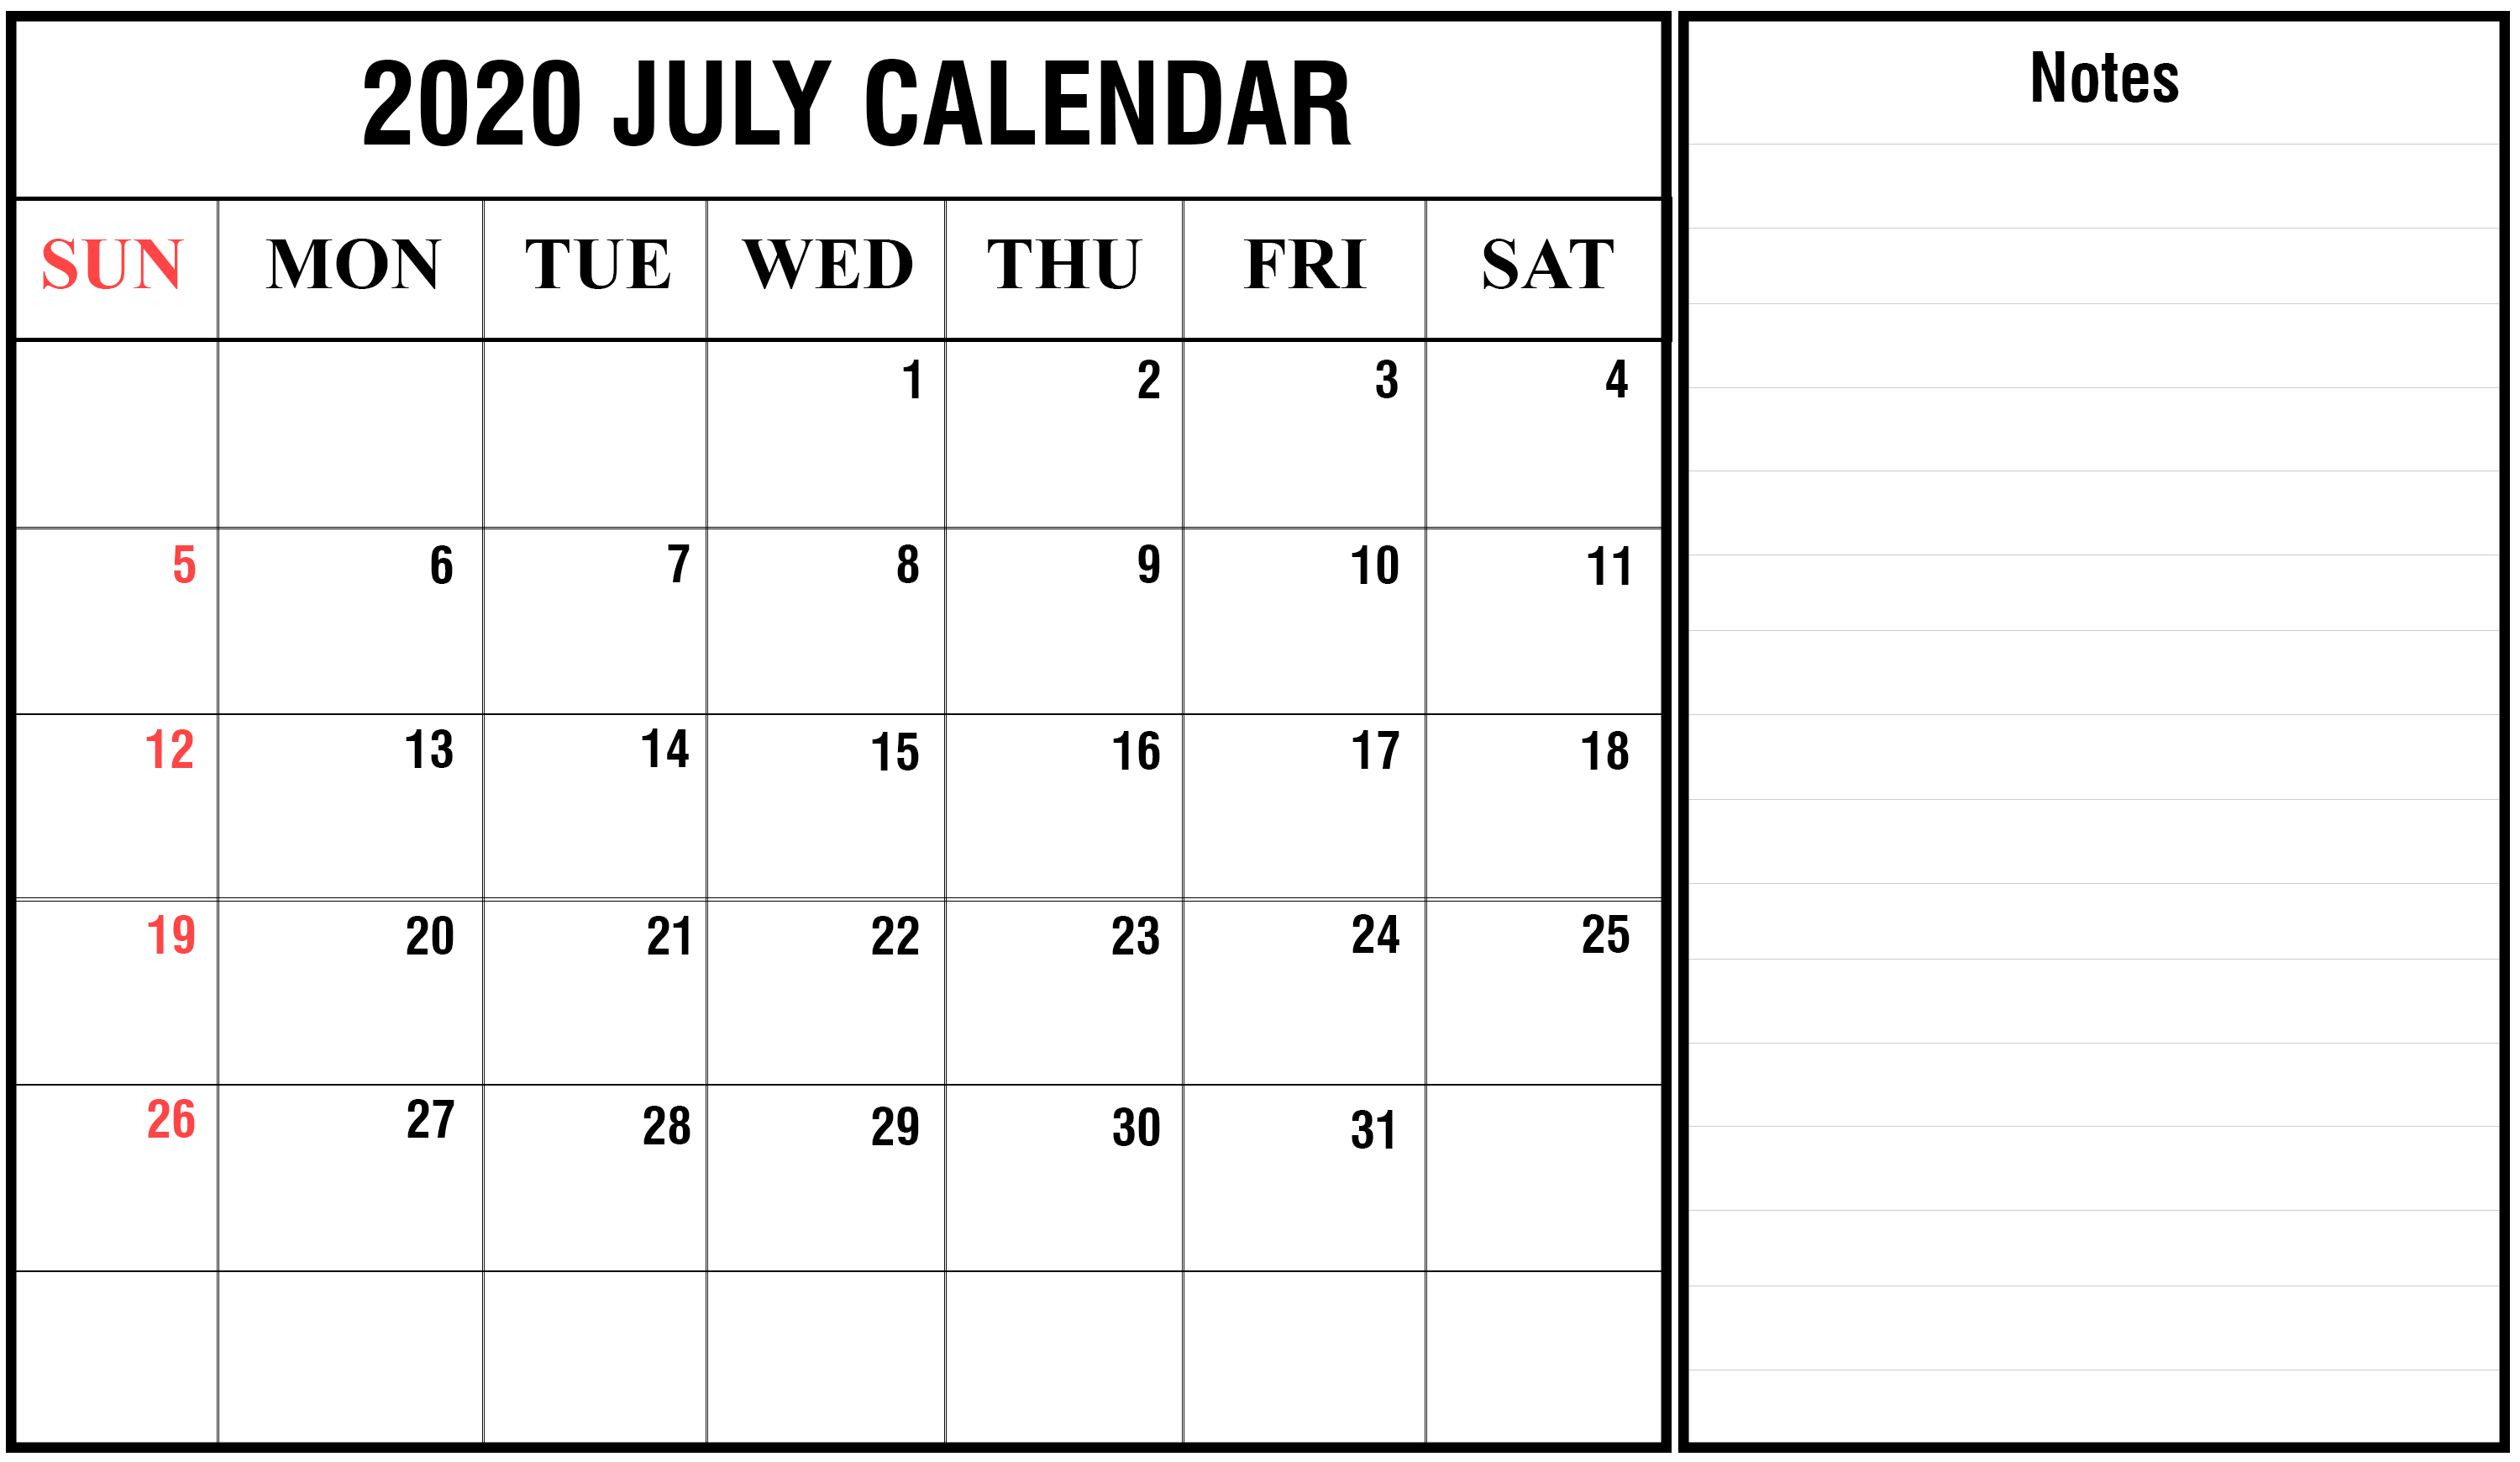 July 2020 Calendar Excel | Printable December Calendar Template pertaining to Calendar Excel Template 2020